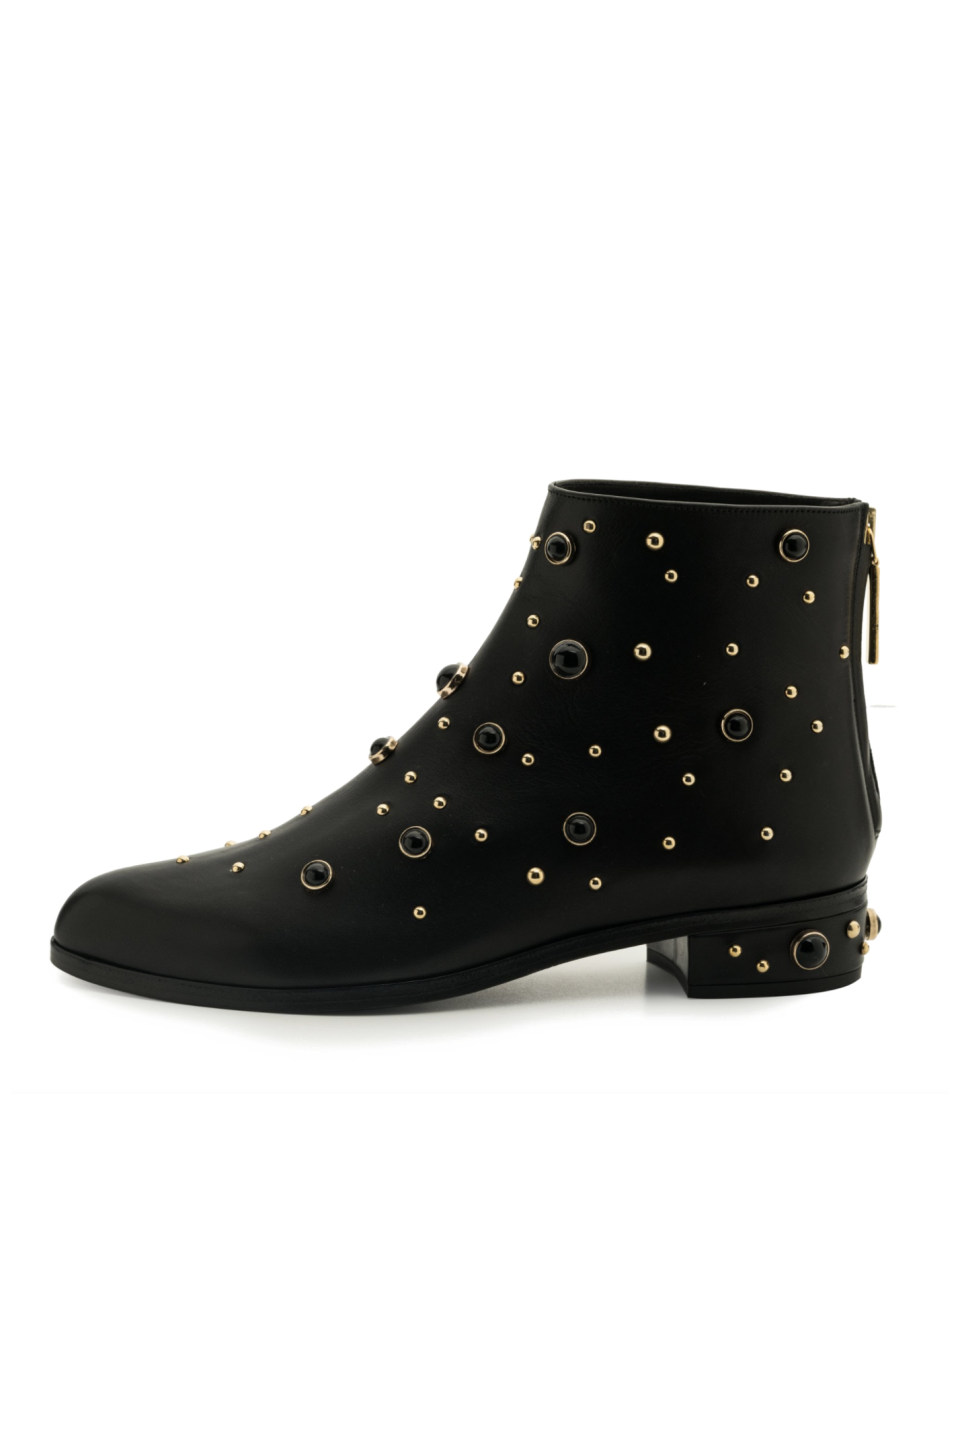 """<p><strong>Kendall Miles </strong></p><p>kendallmilesdesigns.com</p><p><strong>$568.75</strong></p><p><a href=""""https://www.kendallmilesdesigns.com/collections/womens-boots-booties/products/magnetic-calf-boot"""" rel=""""nofollow noopener"""" target=""""_blank"""" data-ylk=""""slk:SHOP IT"""" class=""""link rapid-noclick-resp"""">SHOP IT</a></p><p>These ankle boots feature everything, from glass studs to gold-rimmed embellishments, if you're looking for a shoe that has some extra personality. They're made in Italy and have a double padded leather insole for a comfortable, cushioned feel. </p>"""